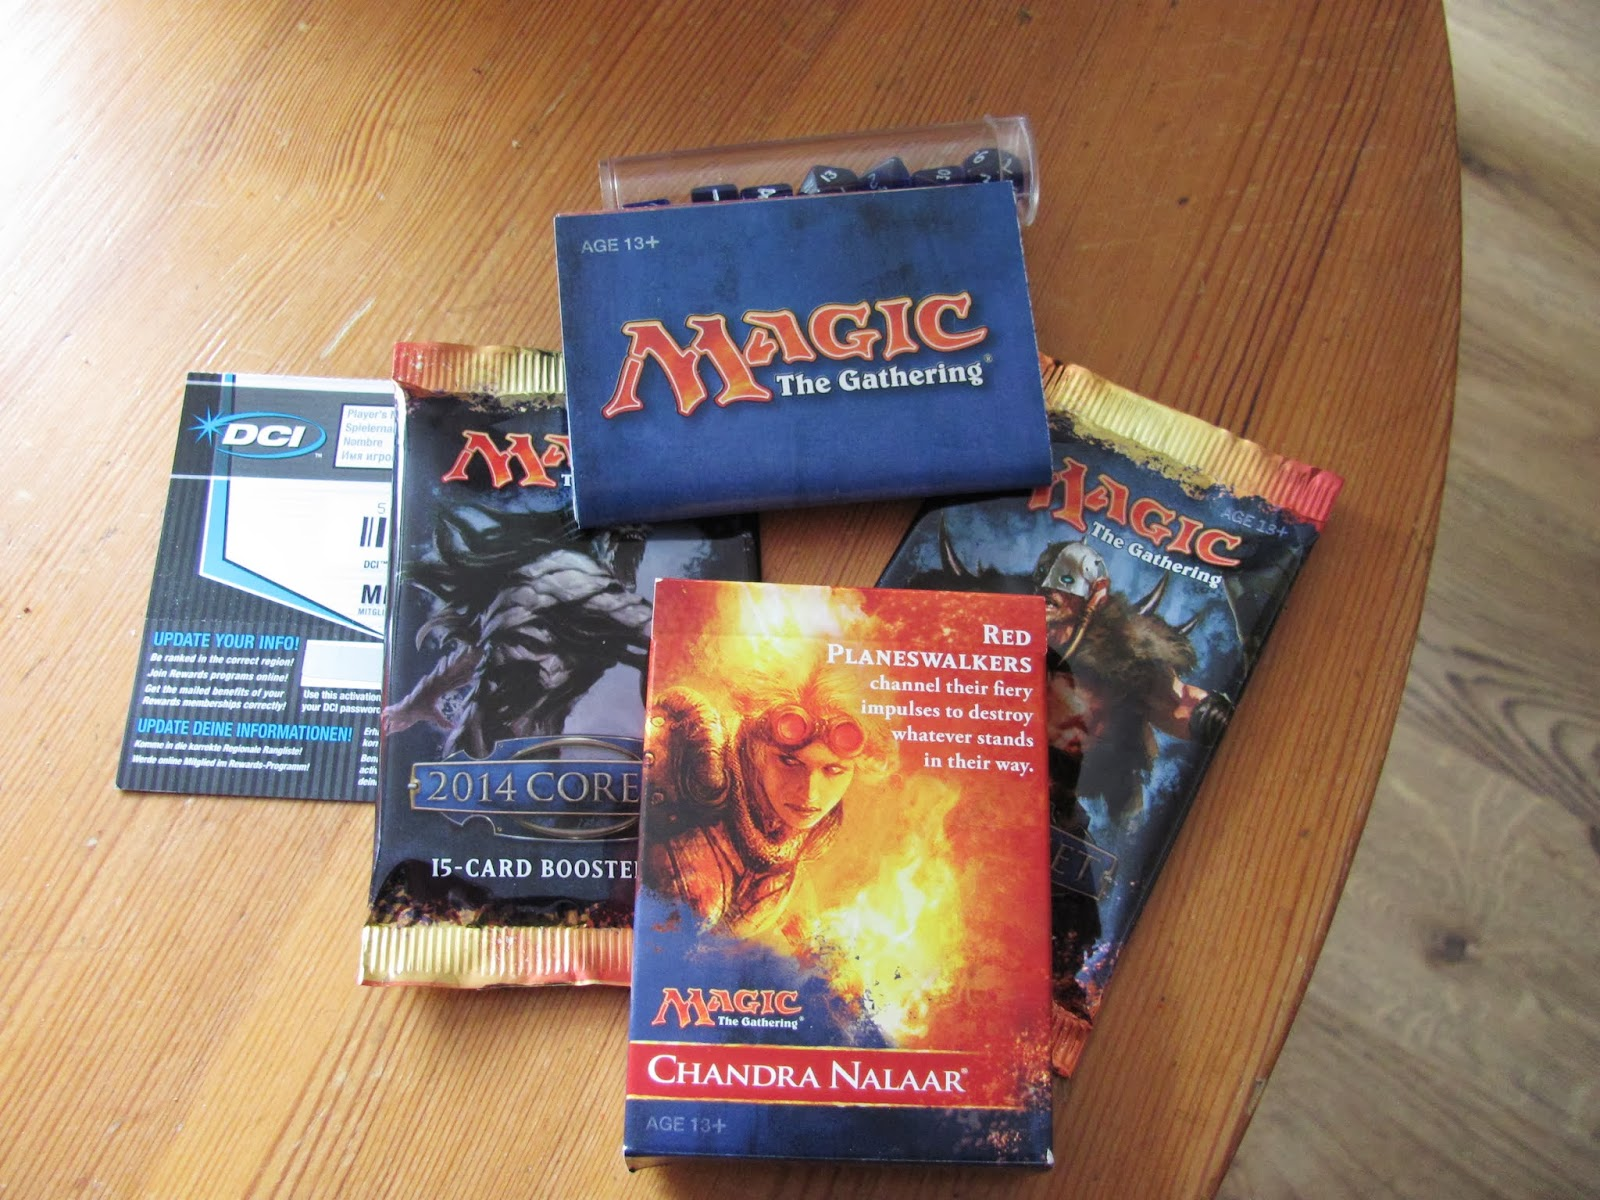 One starter deck and two booster packs of Magic: The Gathering cards